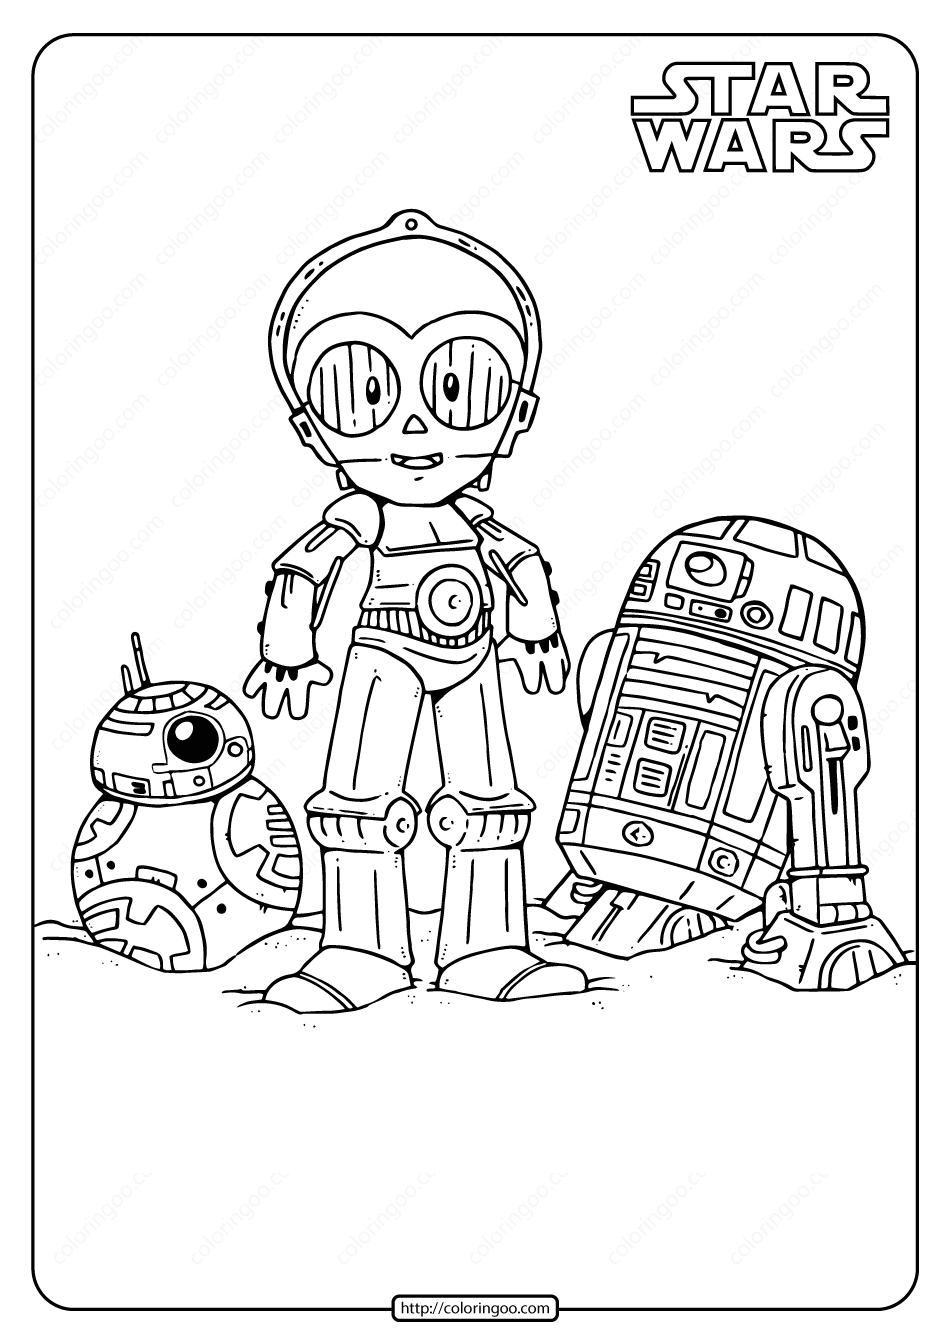 Printable Star Wars Droids Coloring Pages Star Wars Paint Ideas Of Star Wars Paint Starwars In 2020 Star Wars Painting Star Wars Drawings Star Wars Art Drawings